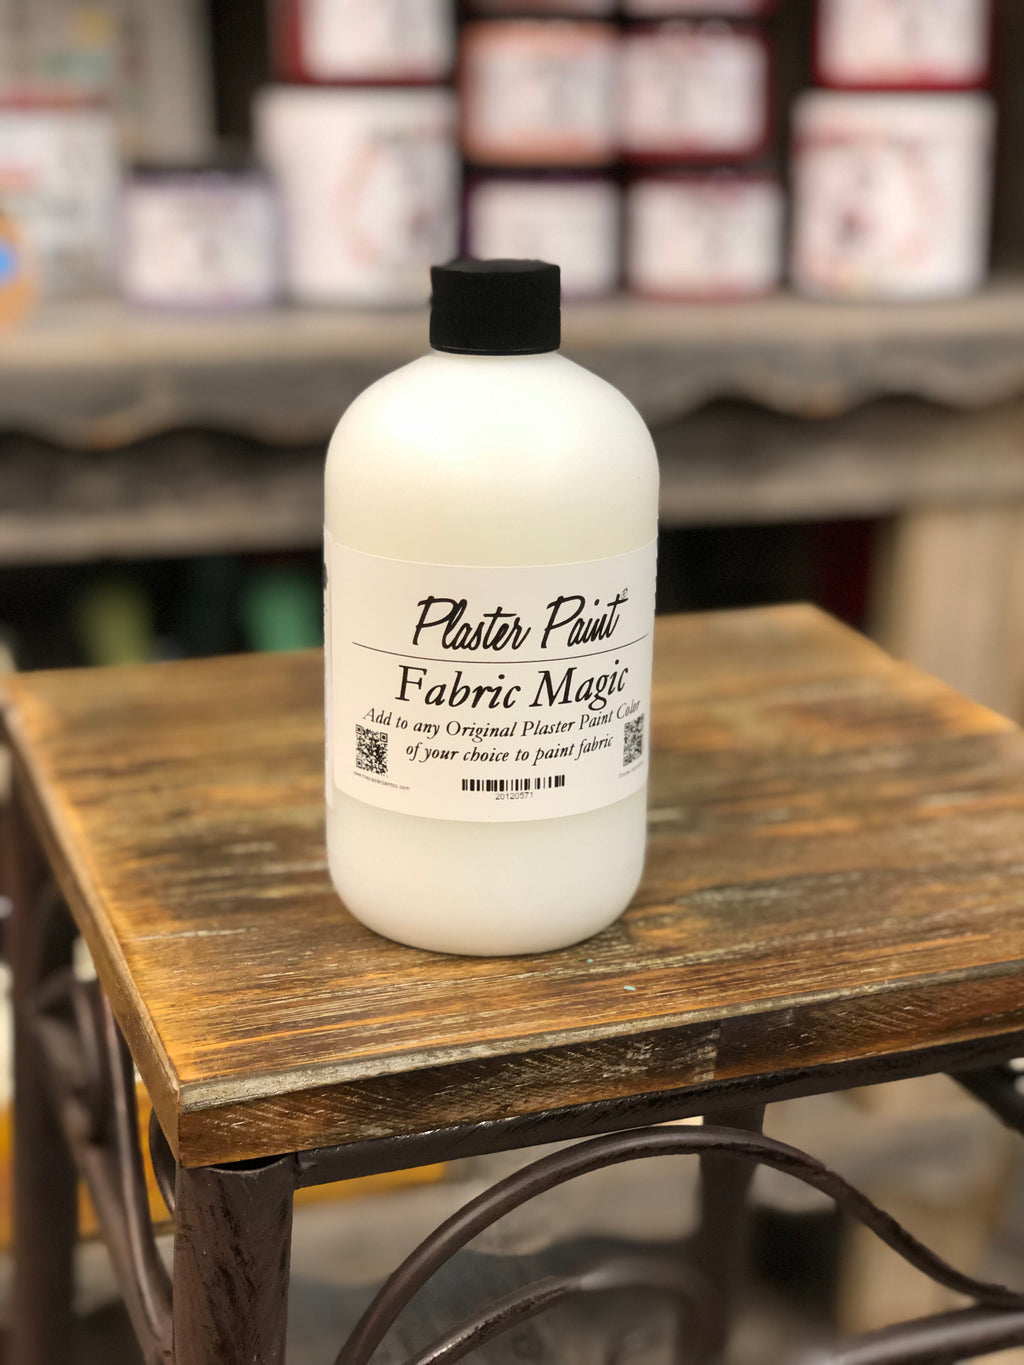 Fabric Magic- A Plaster Paint Product